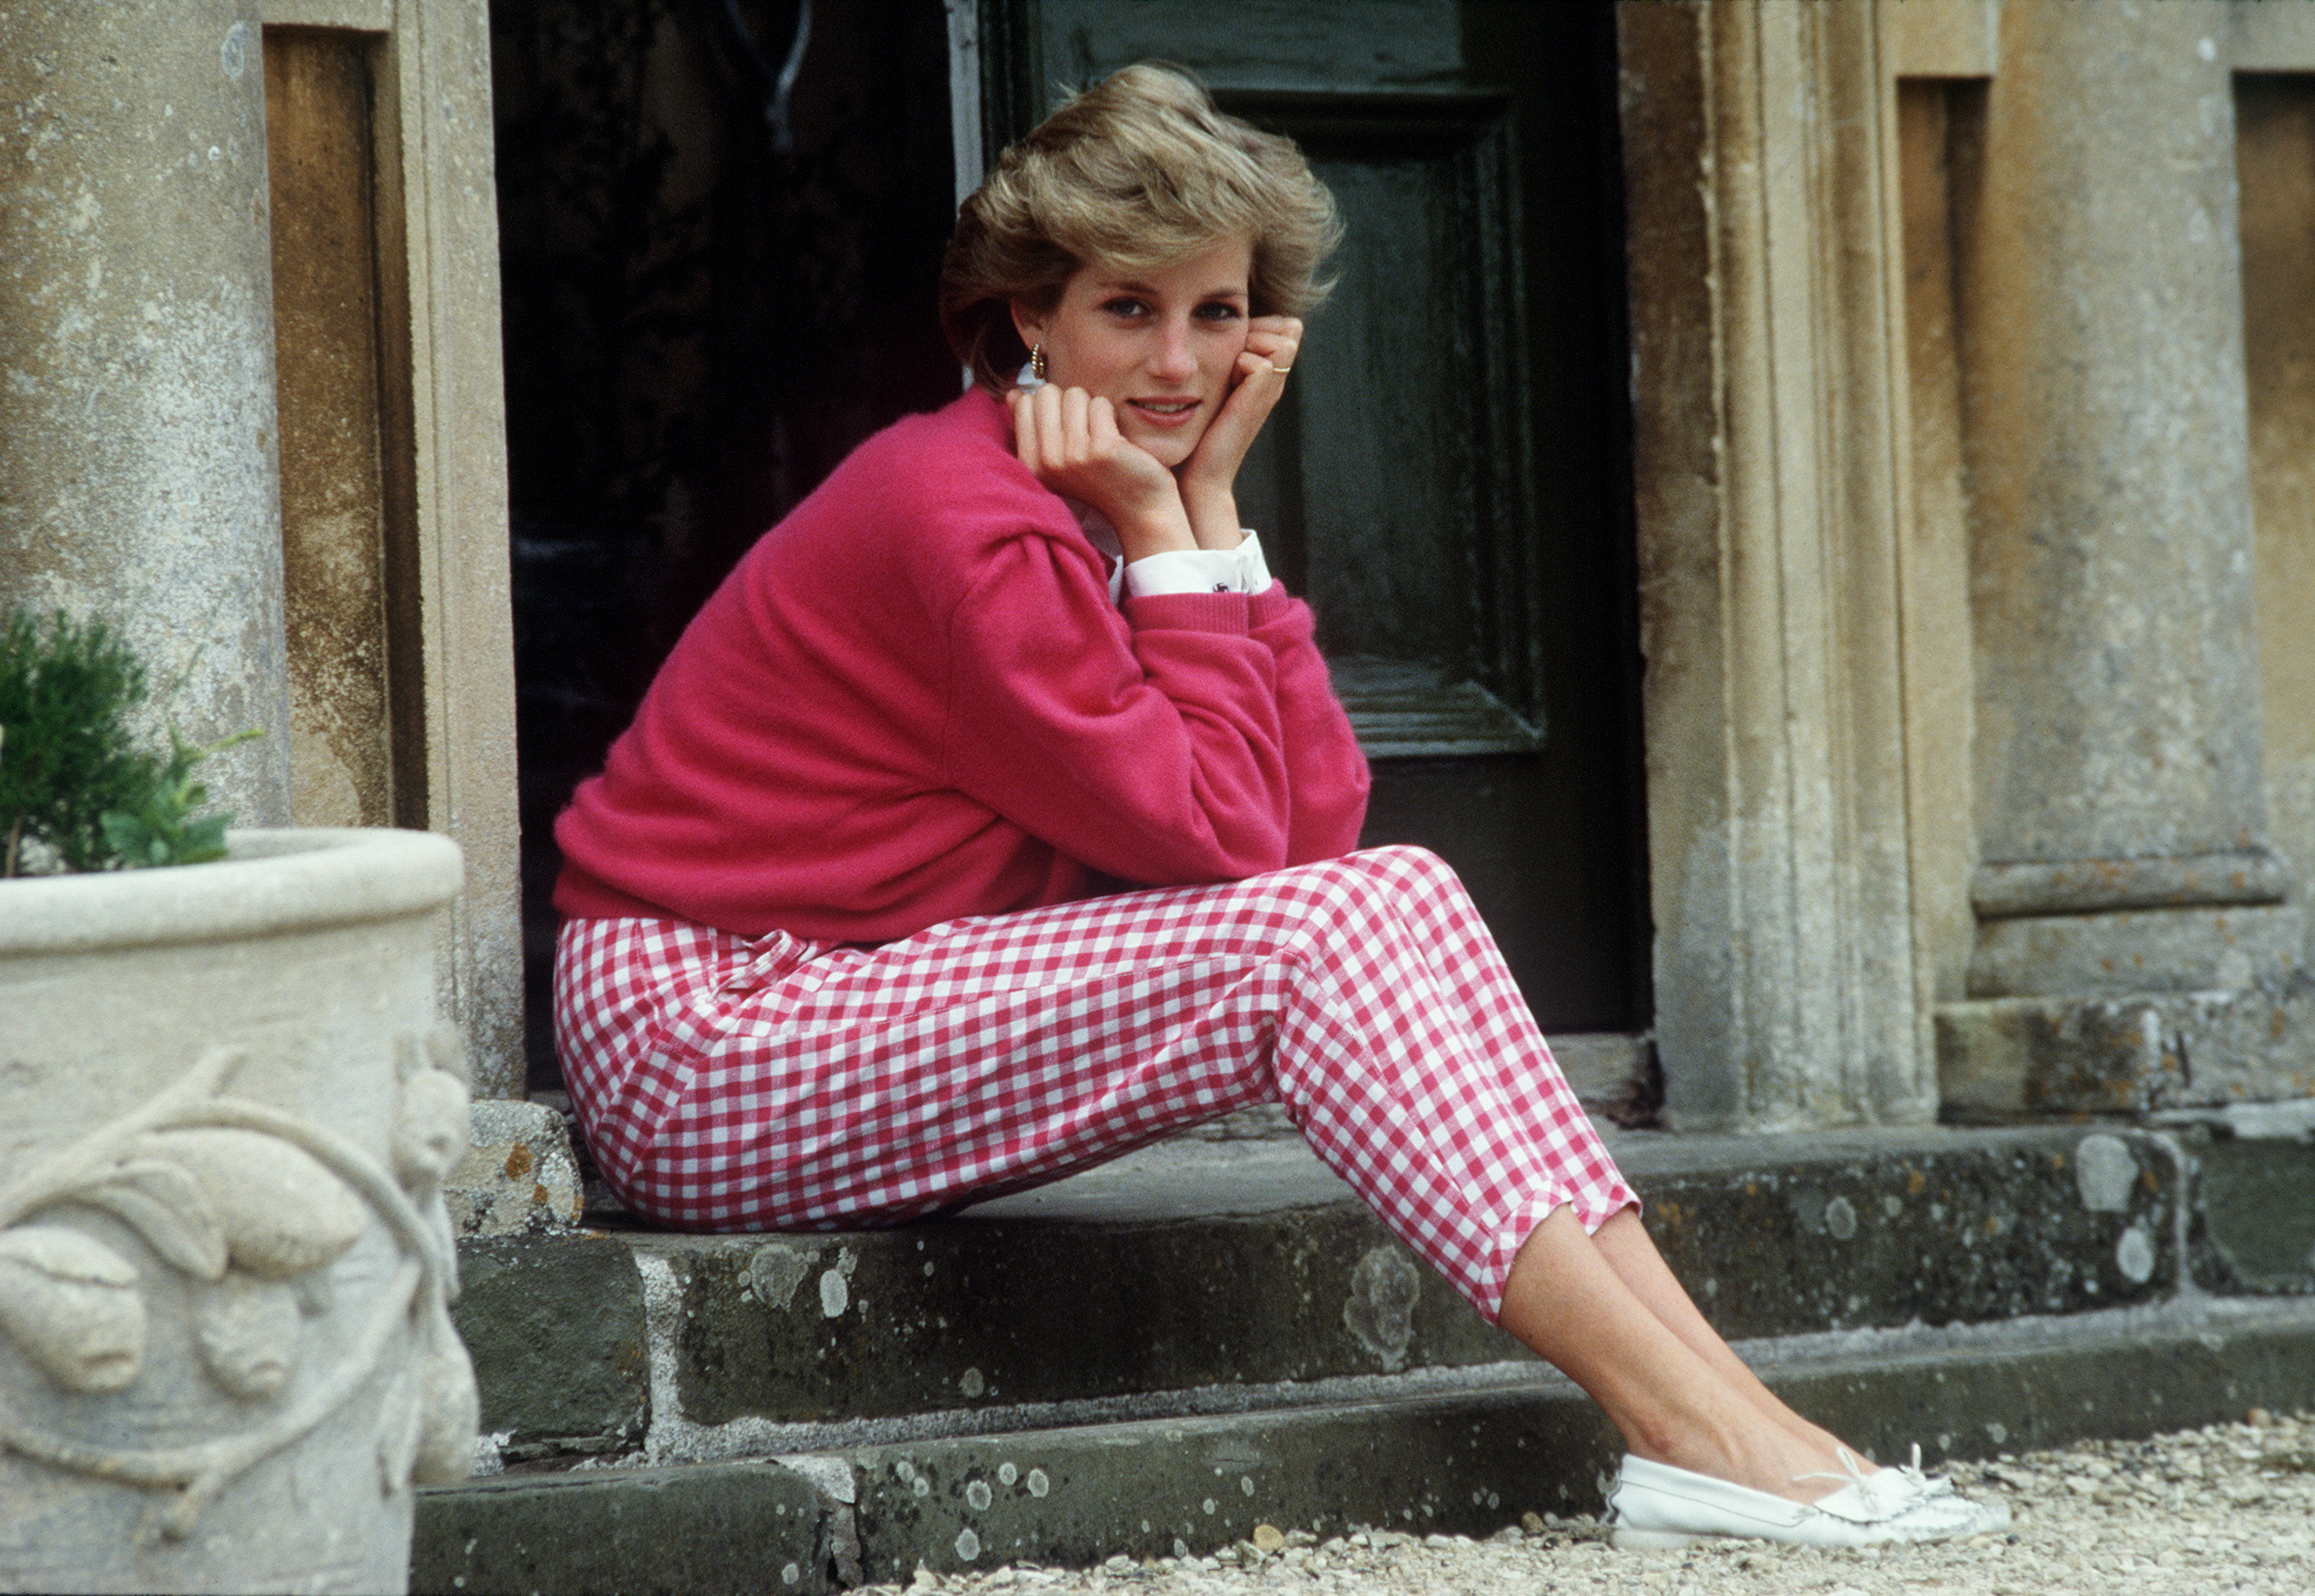 TETBURY, UNITED KINGDOM - JULY 18:  Princess Diana Resting Her Head In Her Hands Whilst Sitting On The Steps Of Her Home At Highgrove, Gloucestershire.  (Photo by Tim Graham Photo Library via Getty Images)